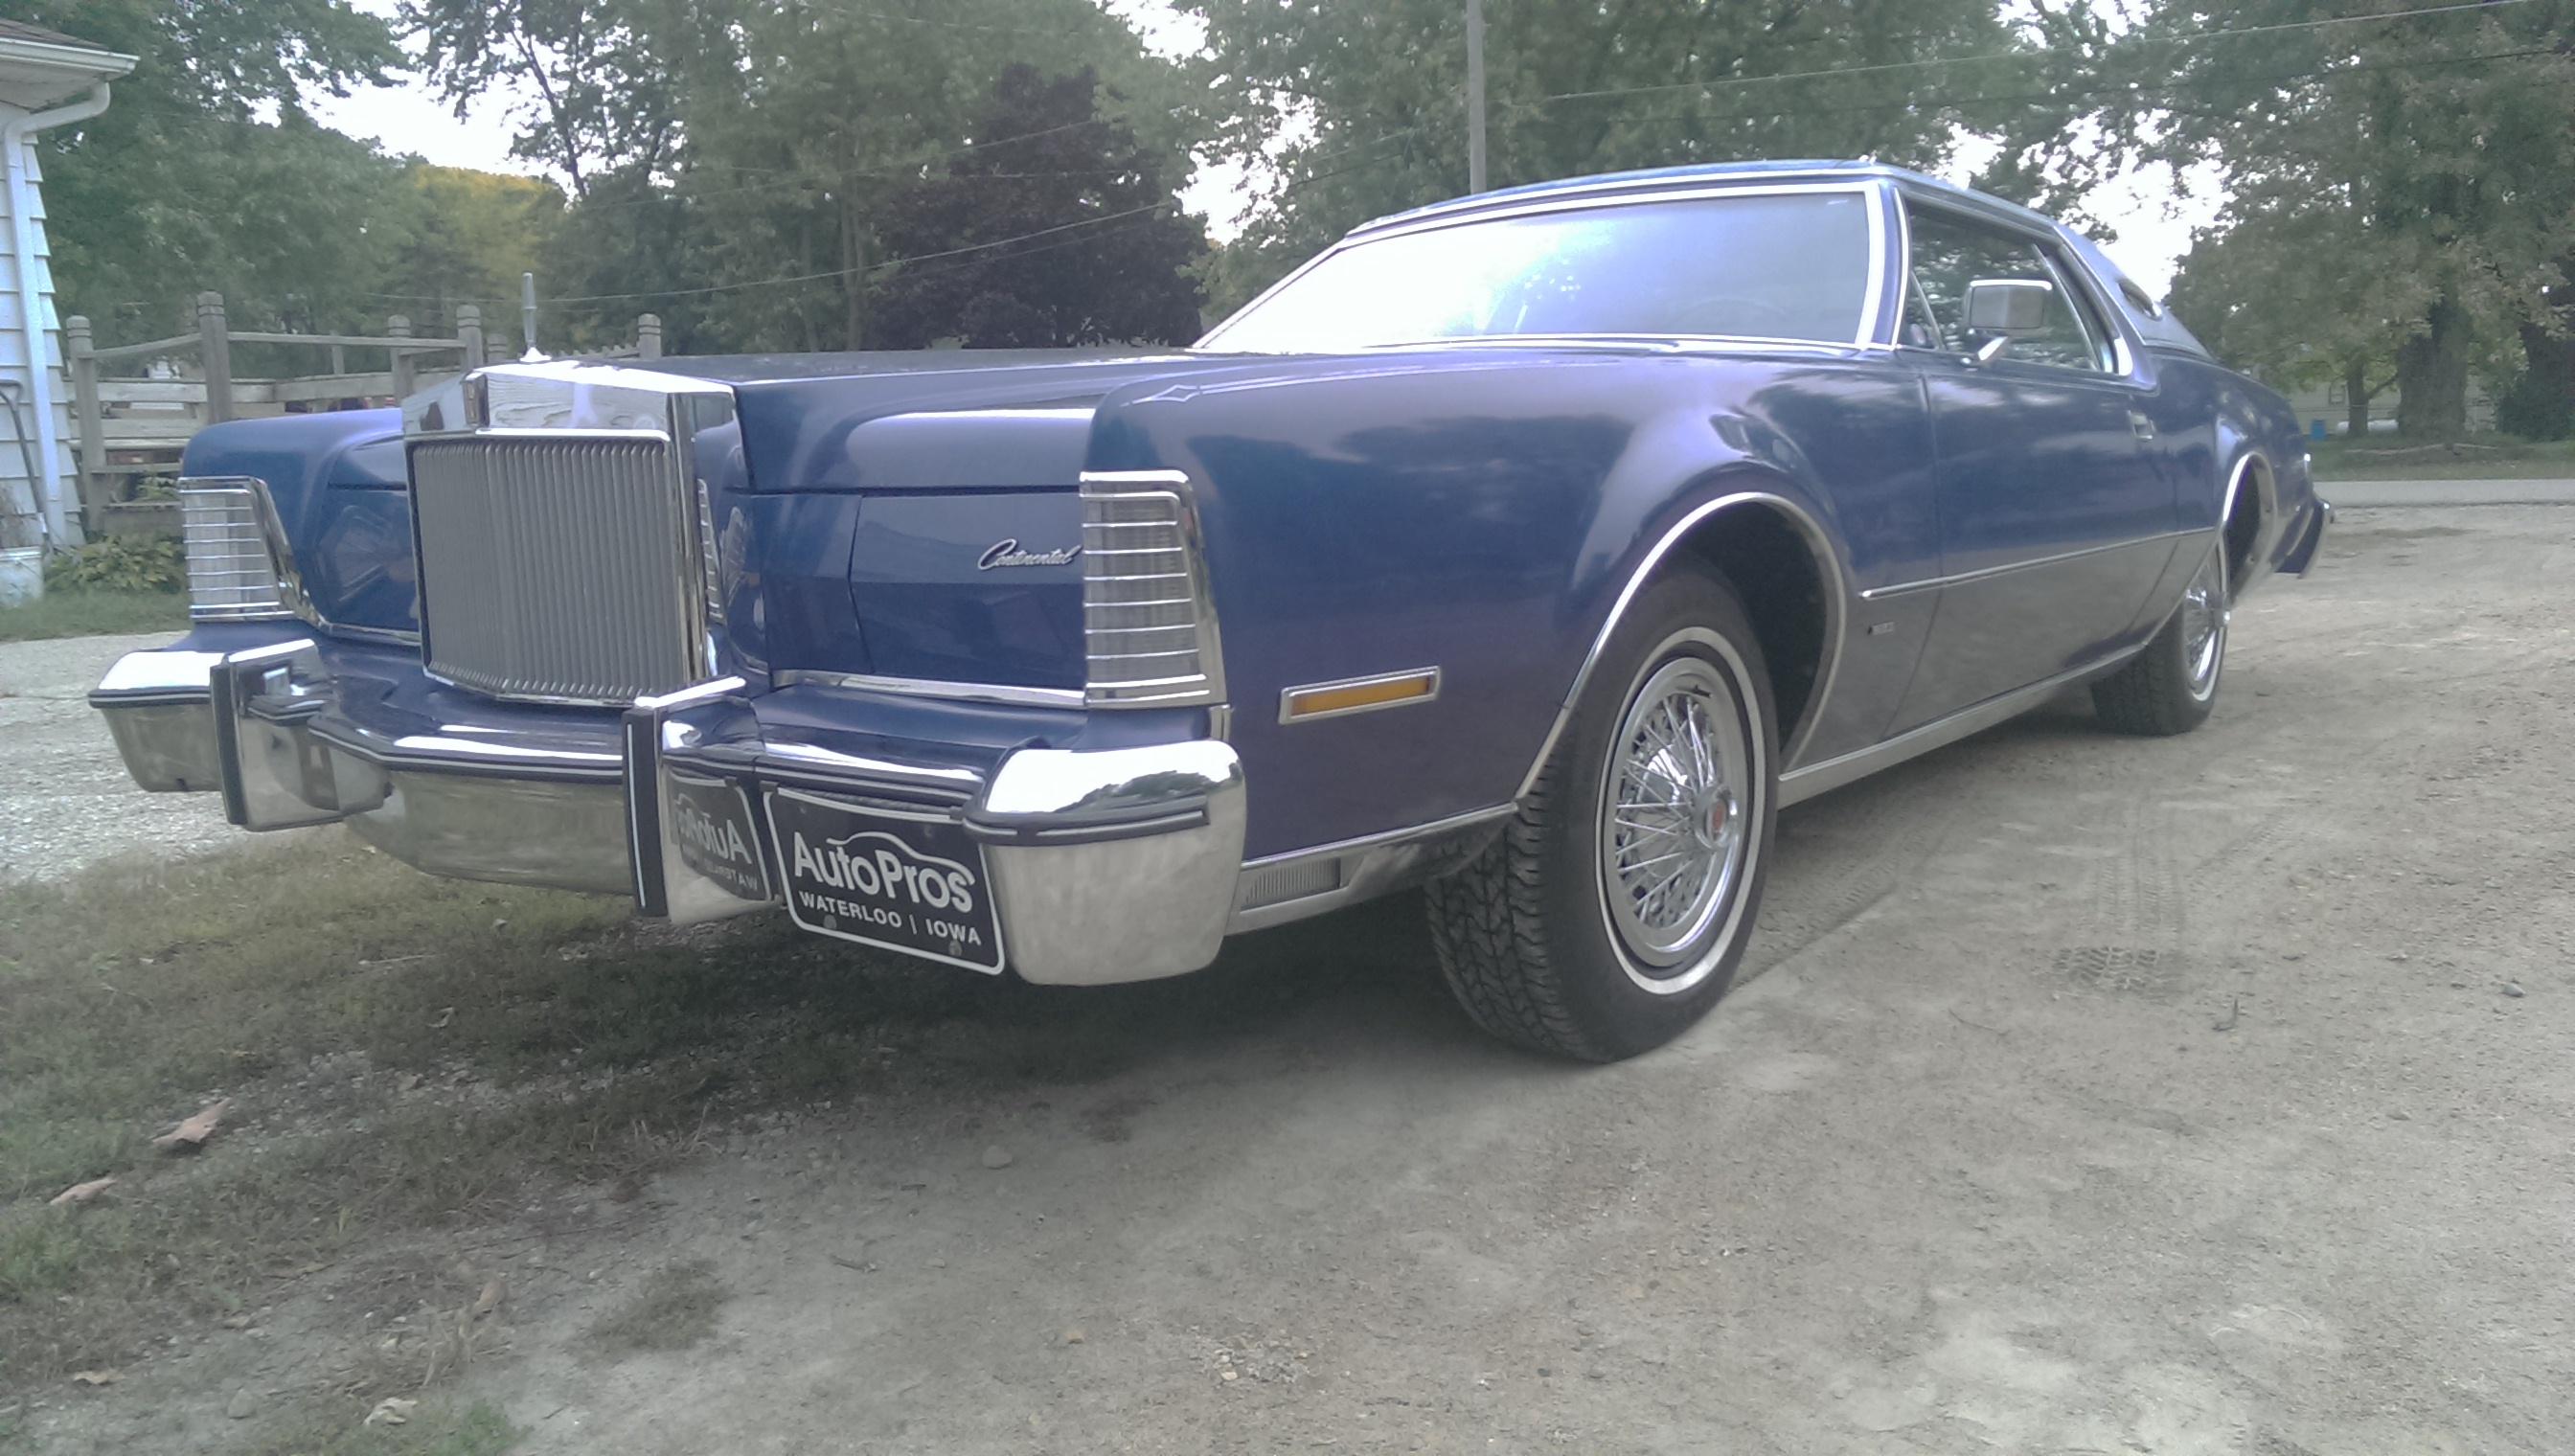 This is my 75 Lincoln Continental Mark IV (4) This actually happens to be my first car im only 15. I love this car its got the big block 460 and it just moves even when weighing 5200 pounds! - 19087068